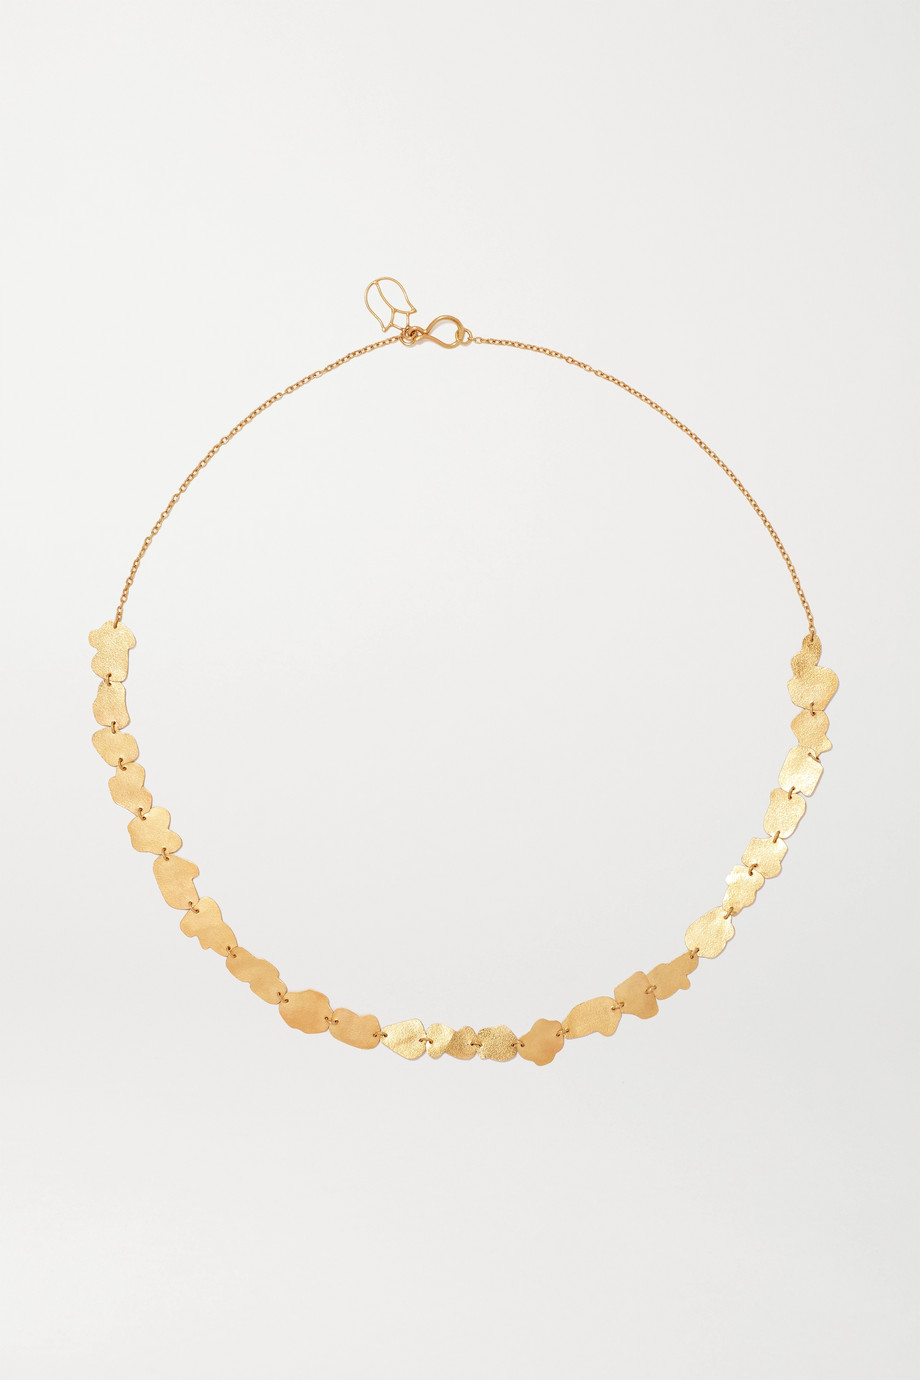 PIPPA SMALL + NET SUSTAIN 18-karat gold necklace